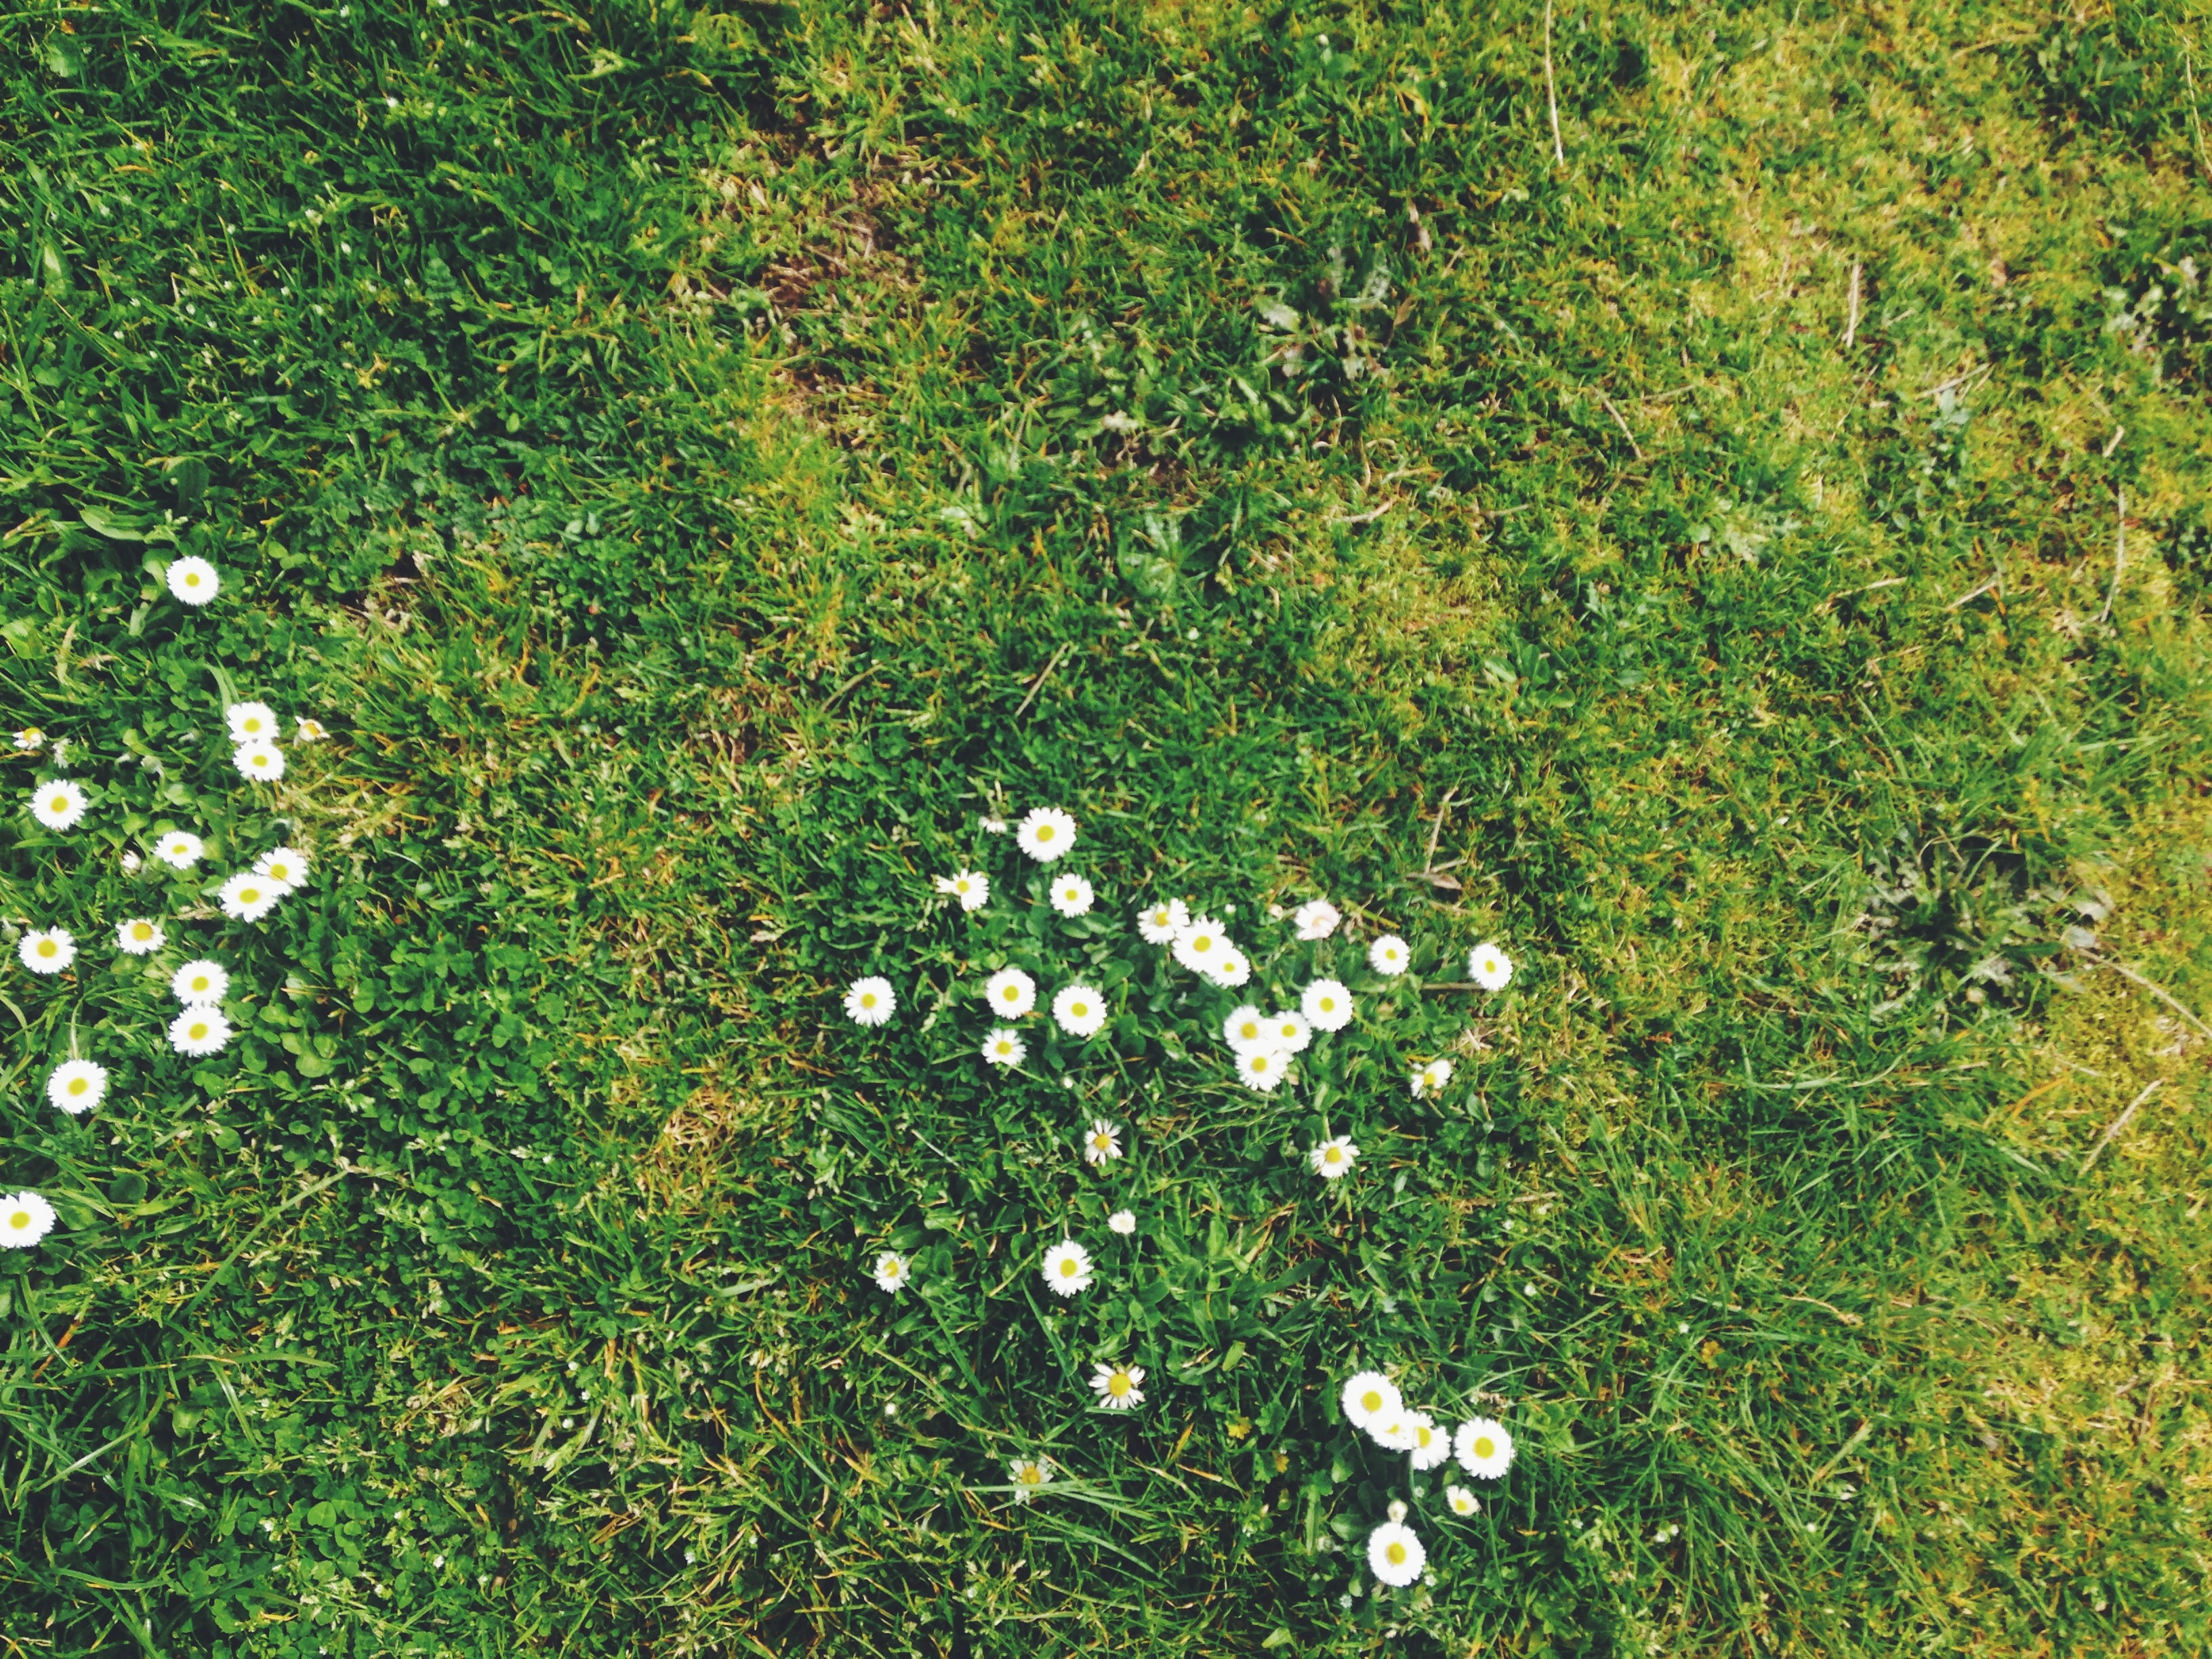 Daisy flowers on green grass lawn in Spring from above